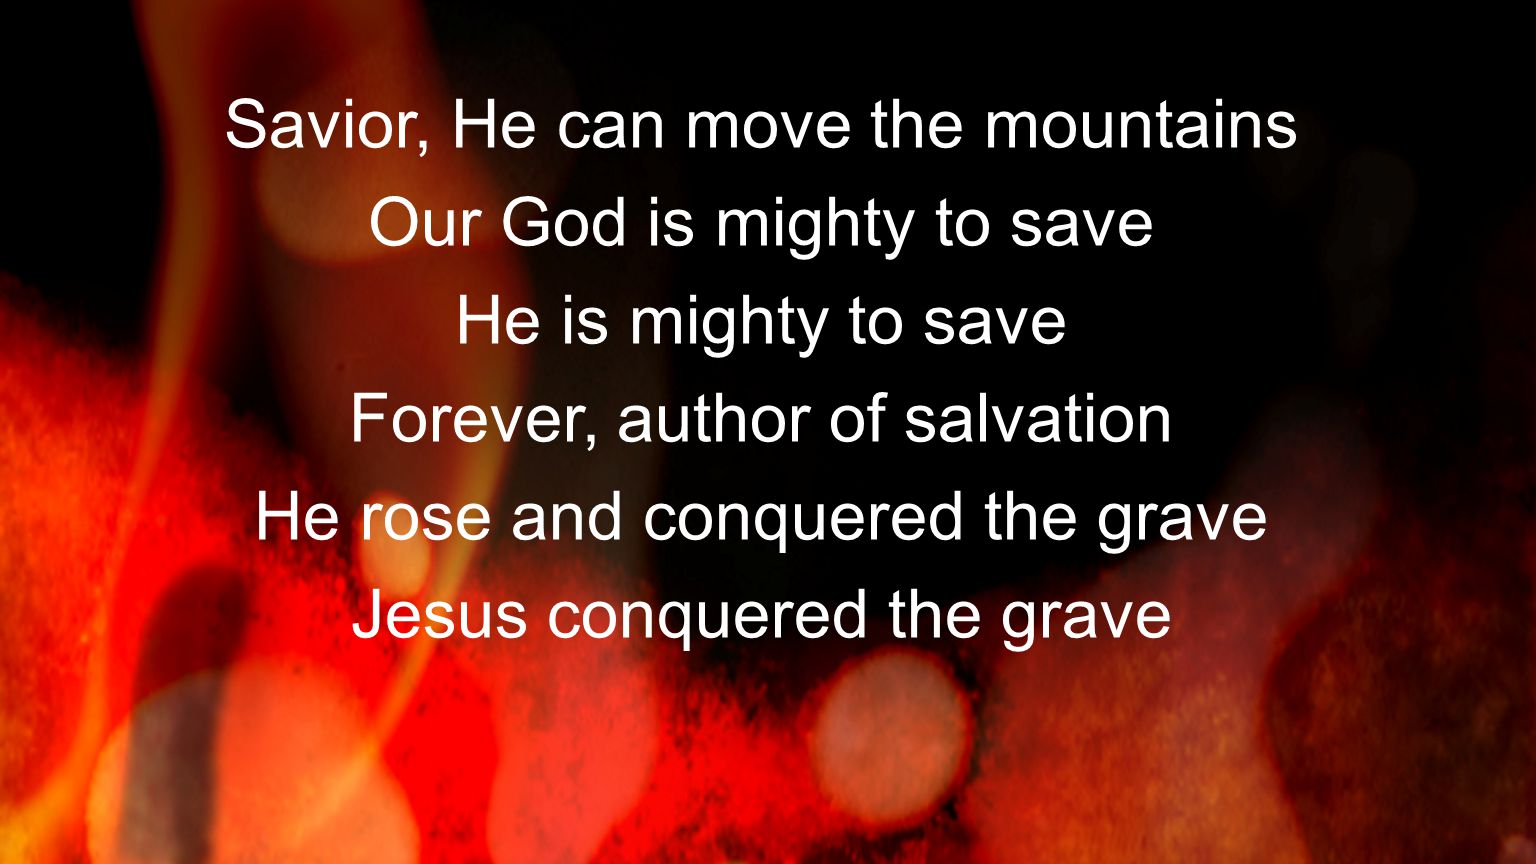 Savior, He can move the mountains Our God is mighty to save